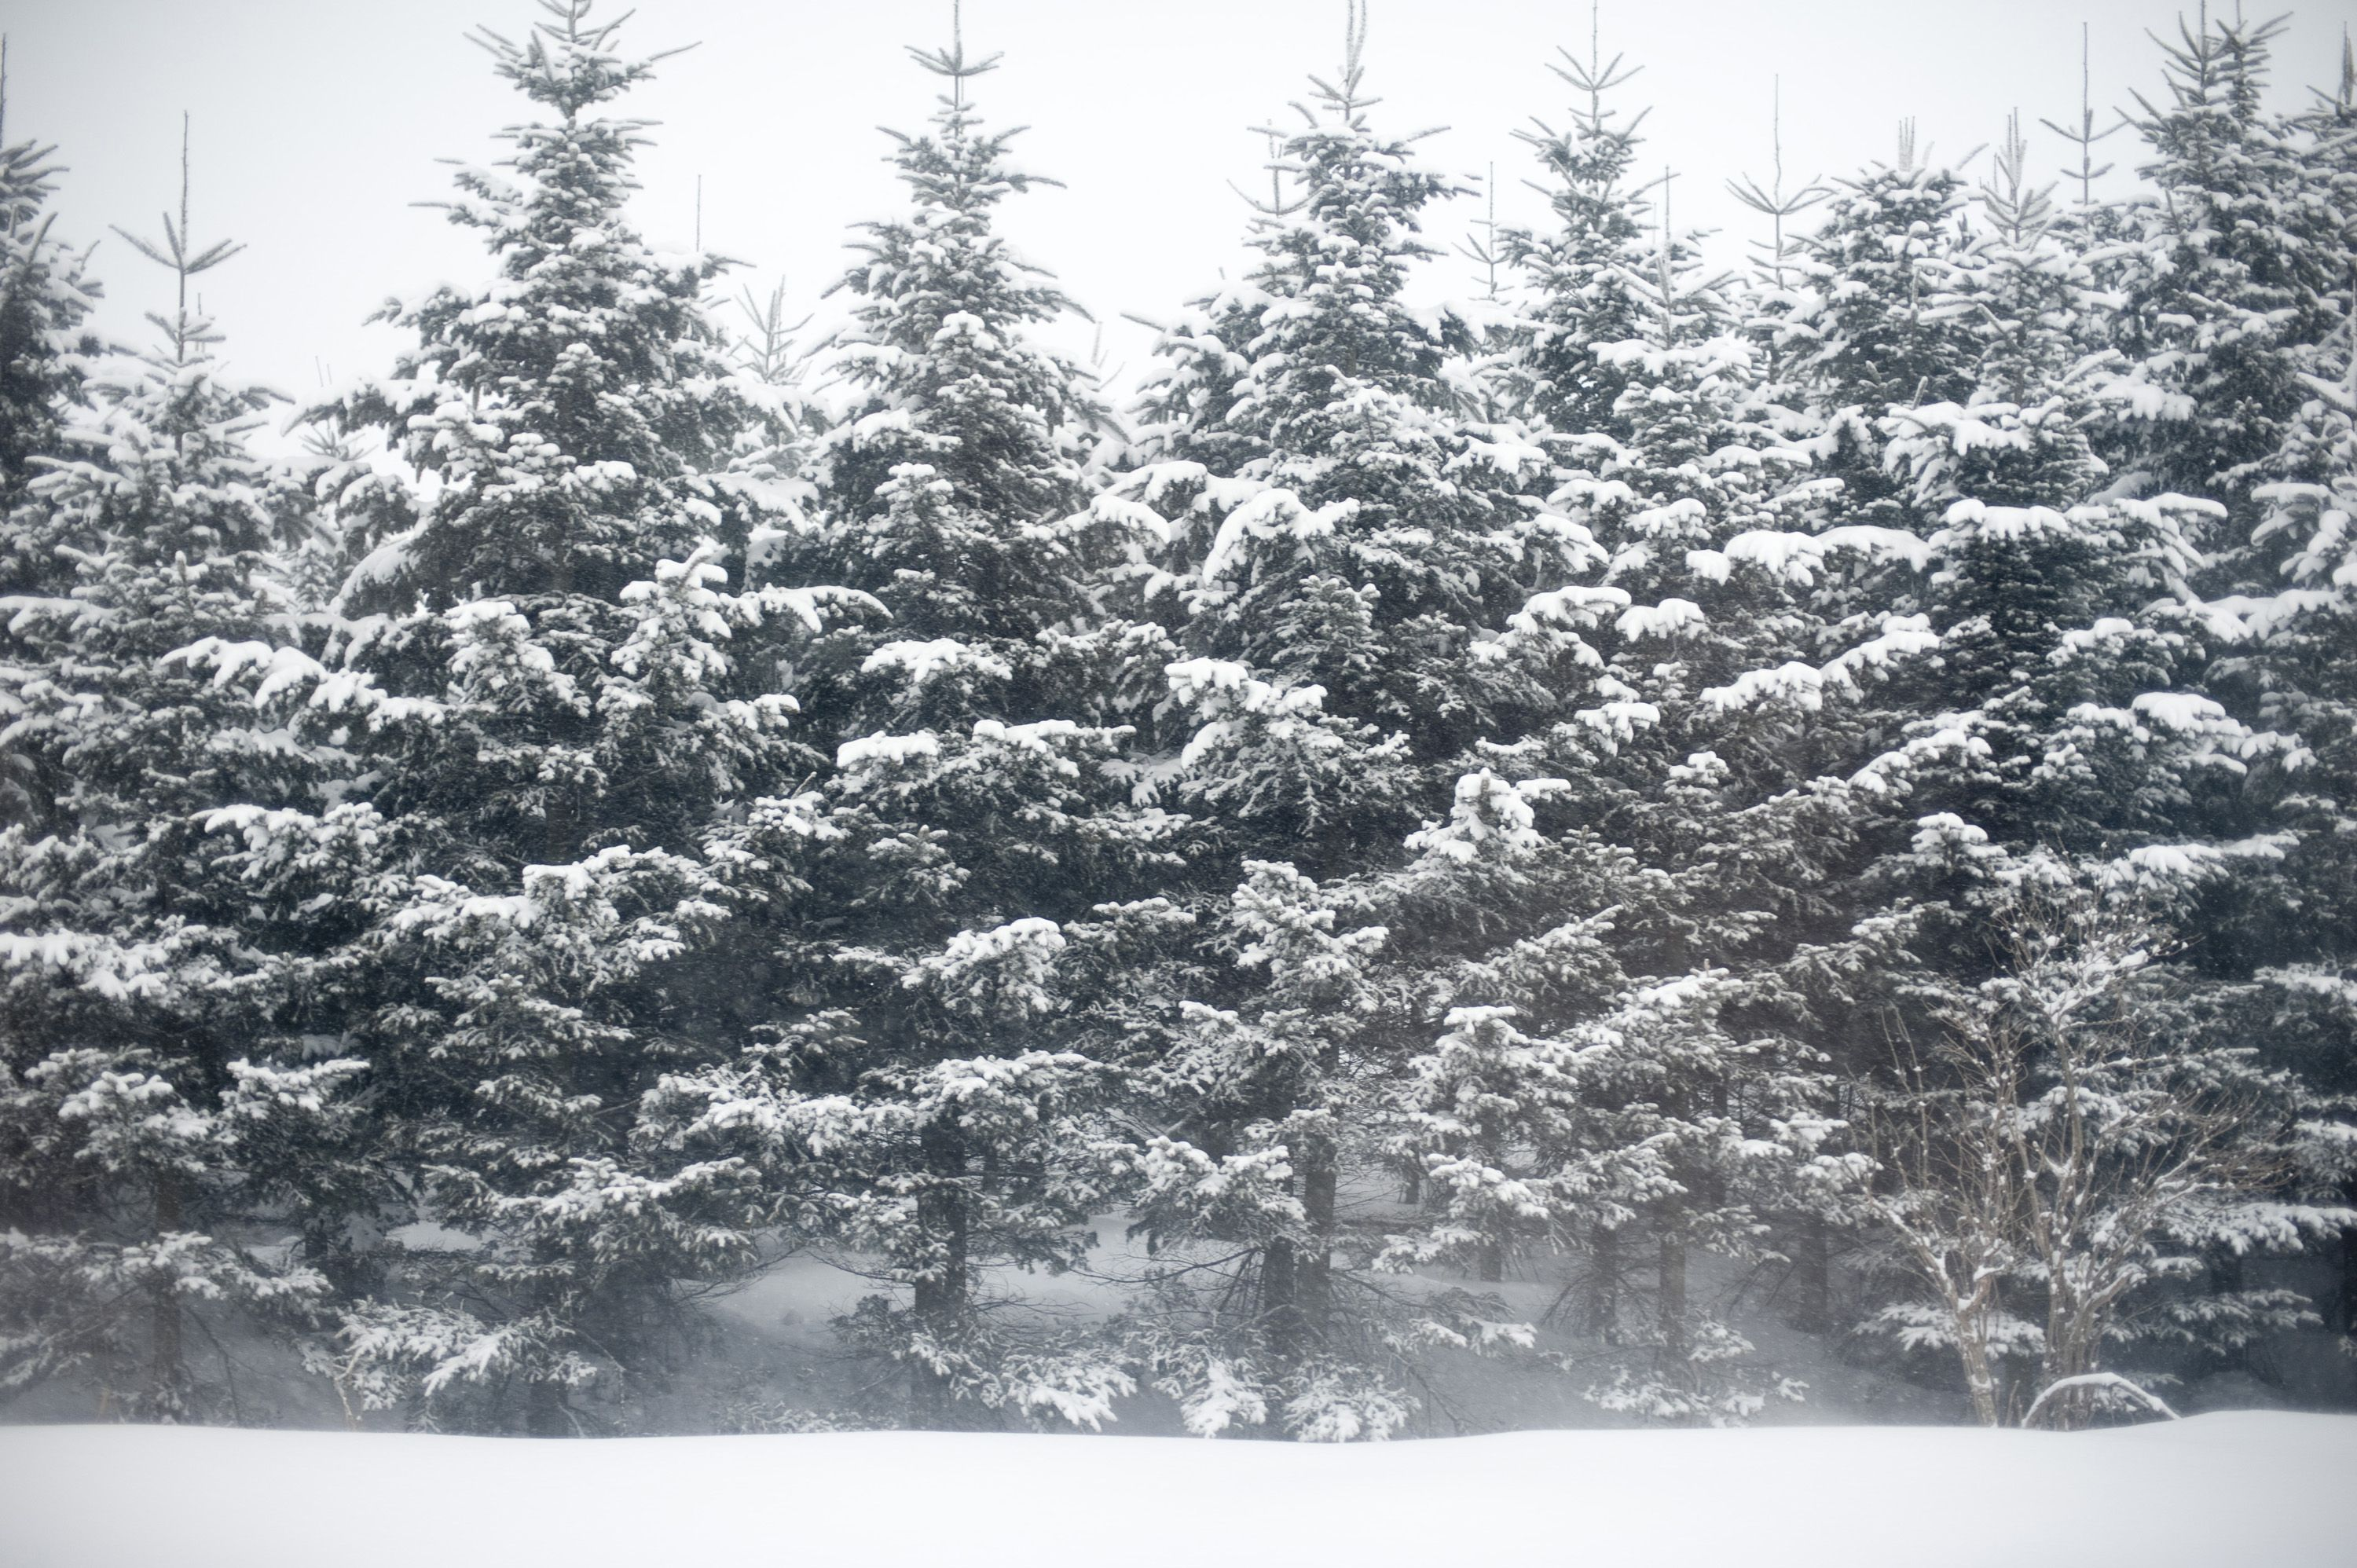 Pine trees in snow winter pine trees christmas images - Images of pine trees in snow ...